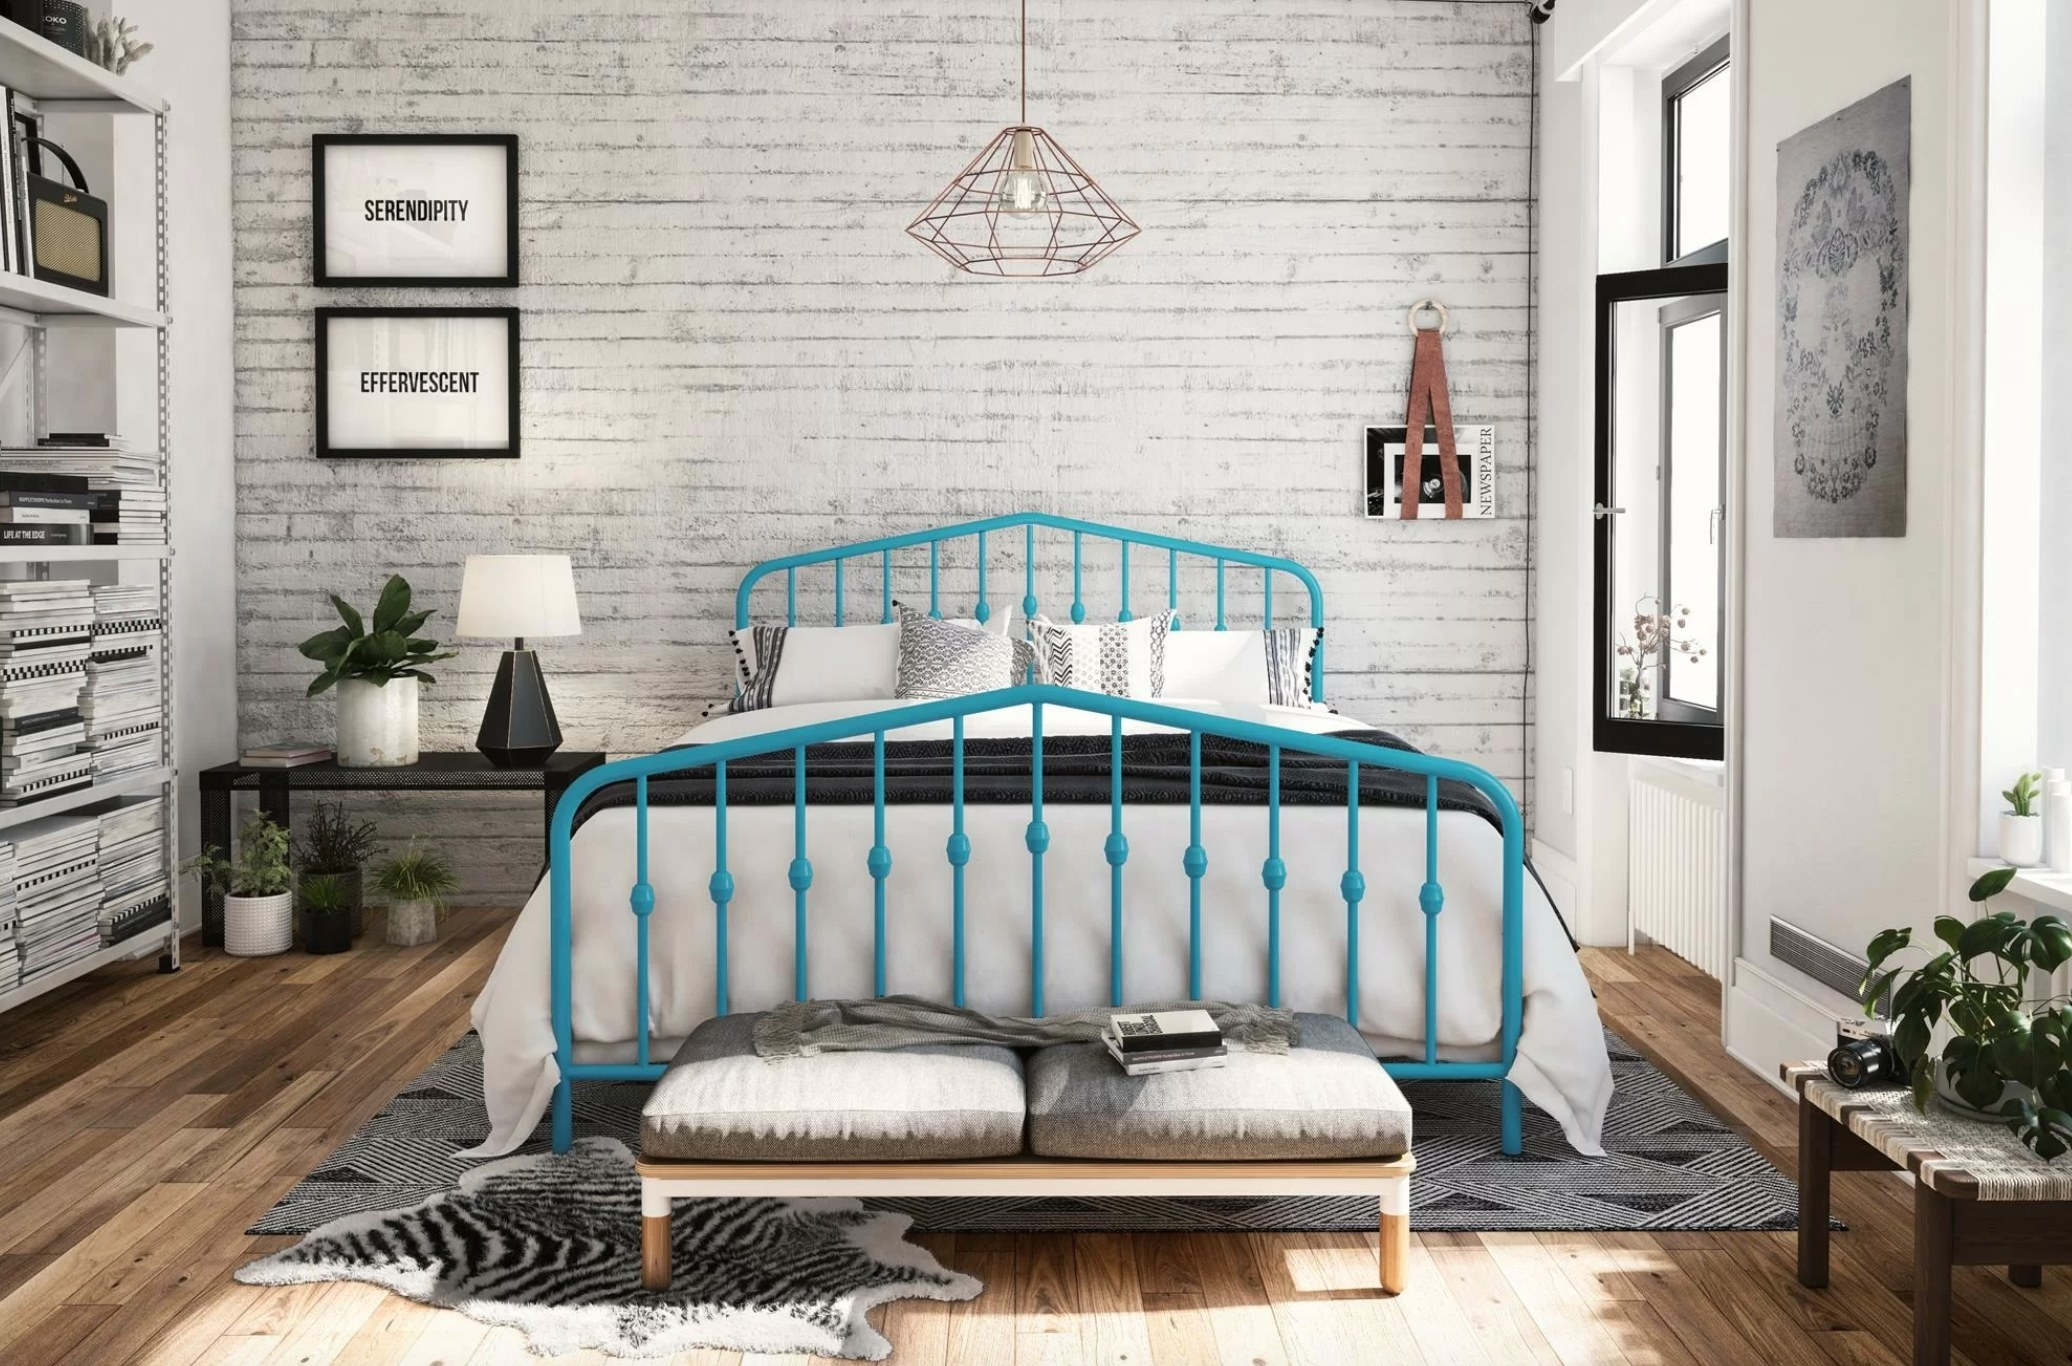 The platform bed in sea blue